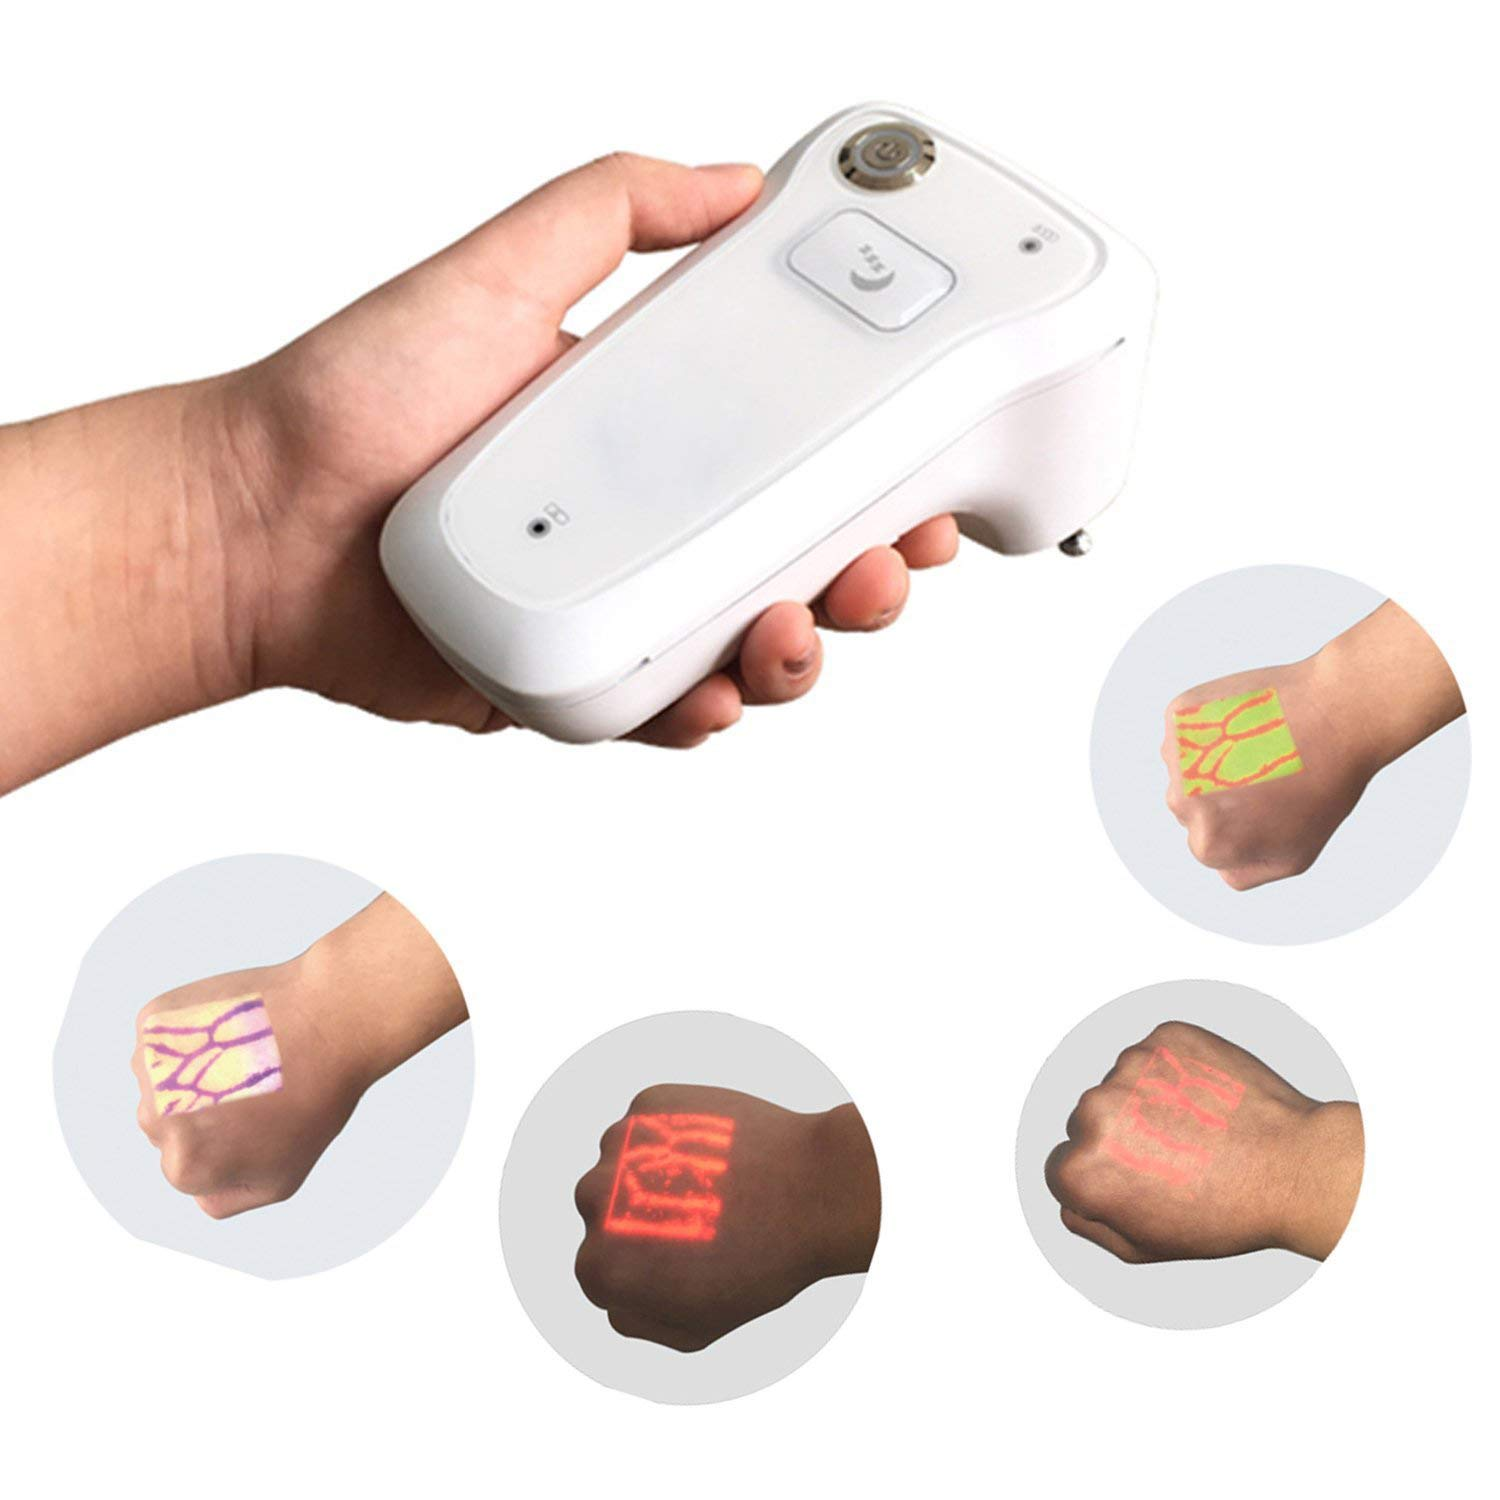 Infrared Scanning Blood Vessel Detector Portable Vein Viewer Detector Locator Illumination Visualization Lights for IV Phlebotomy Venipuncture Support